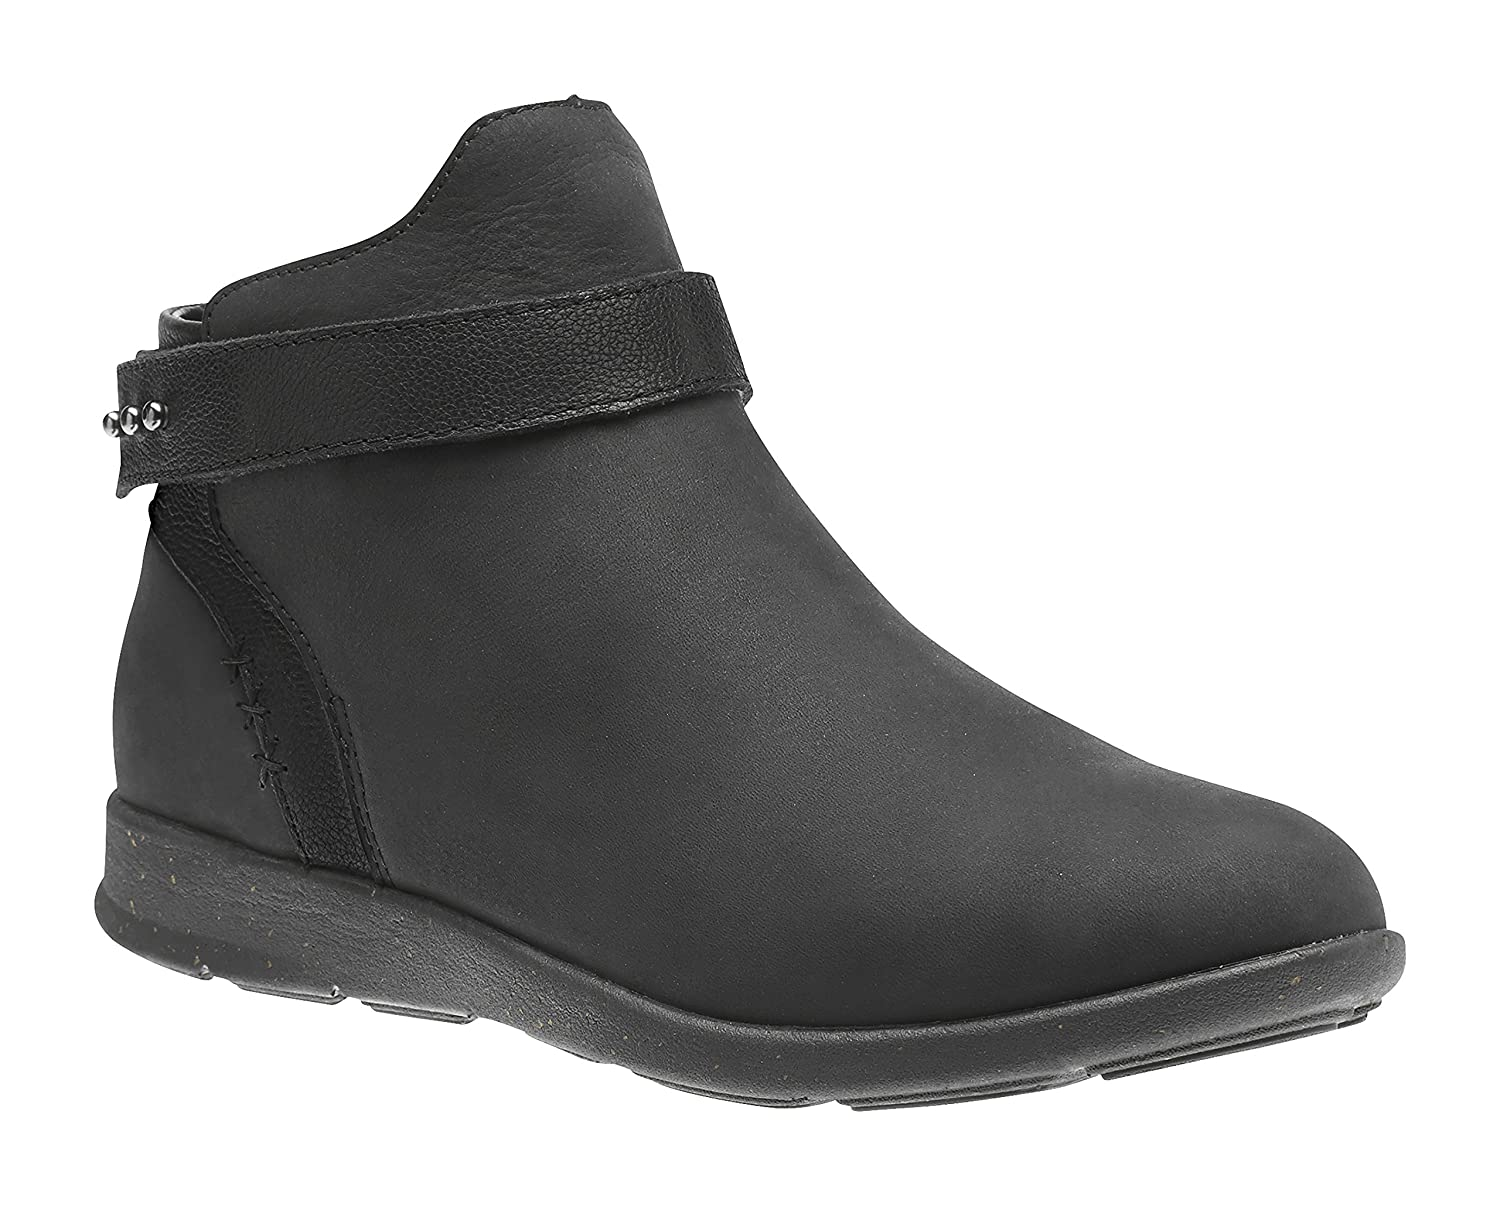 Superfeet Ash Women's Comfort Casual Boot B01N6PDZ5Z 8.5 B(M) US|Black / Black